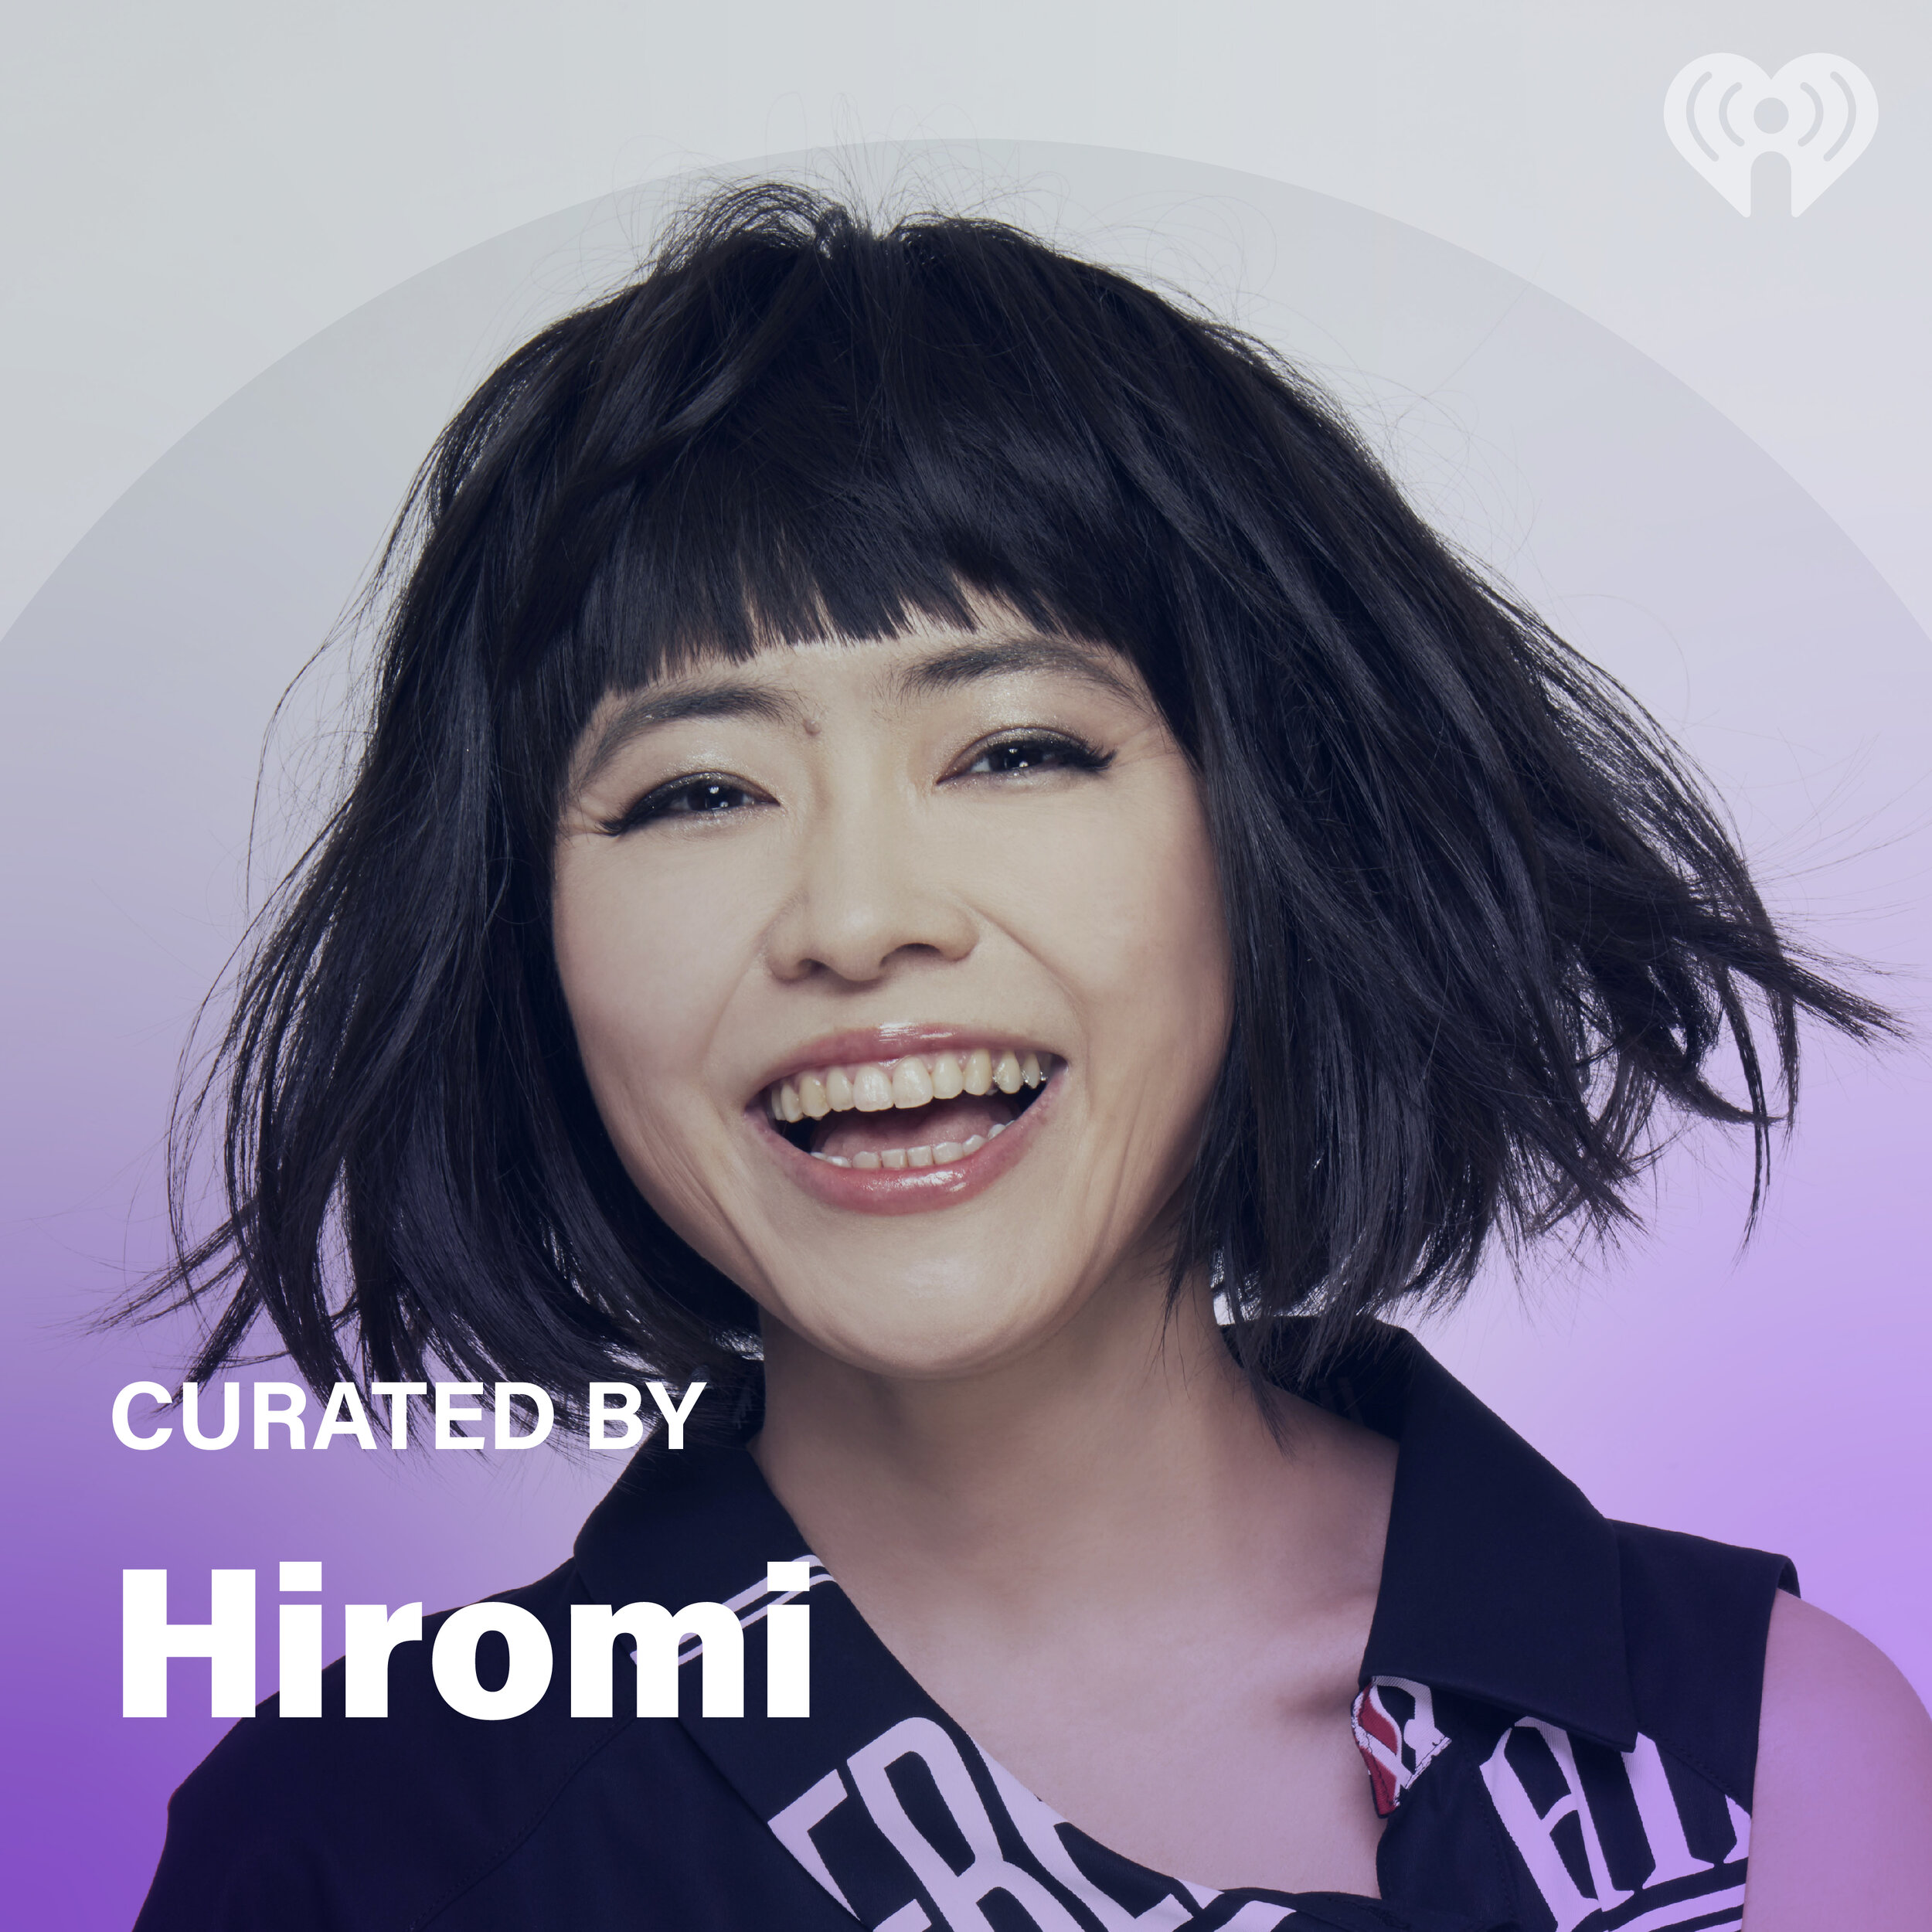 Curated By: Hiromi